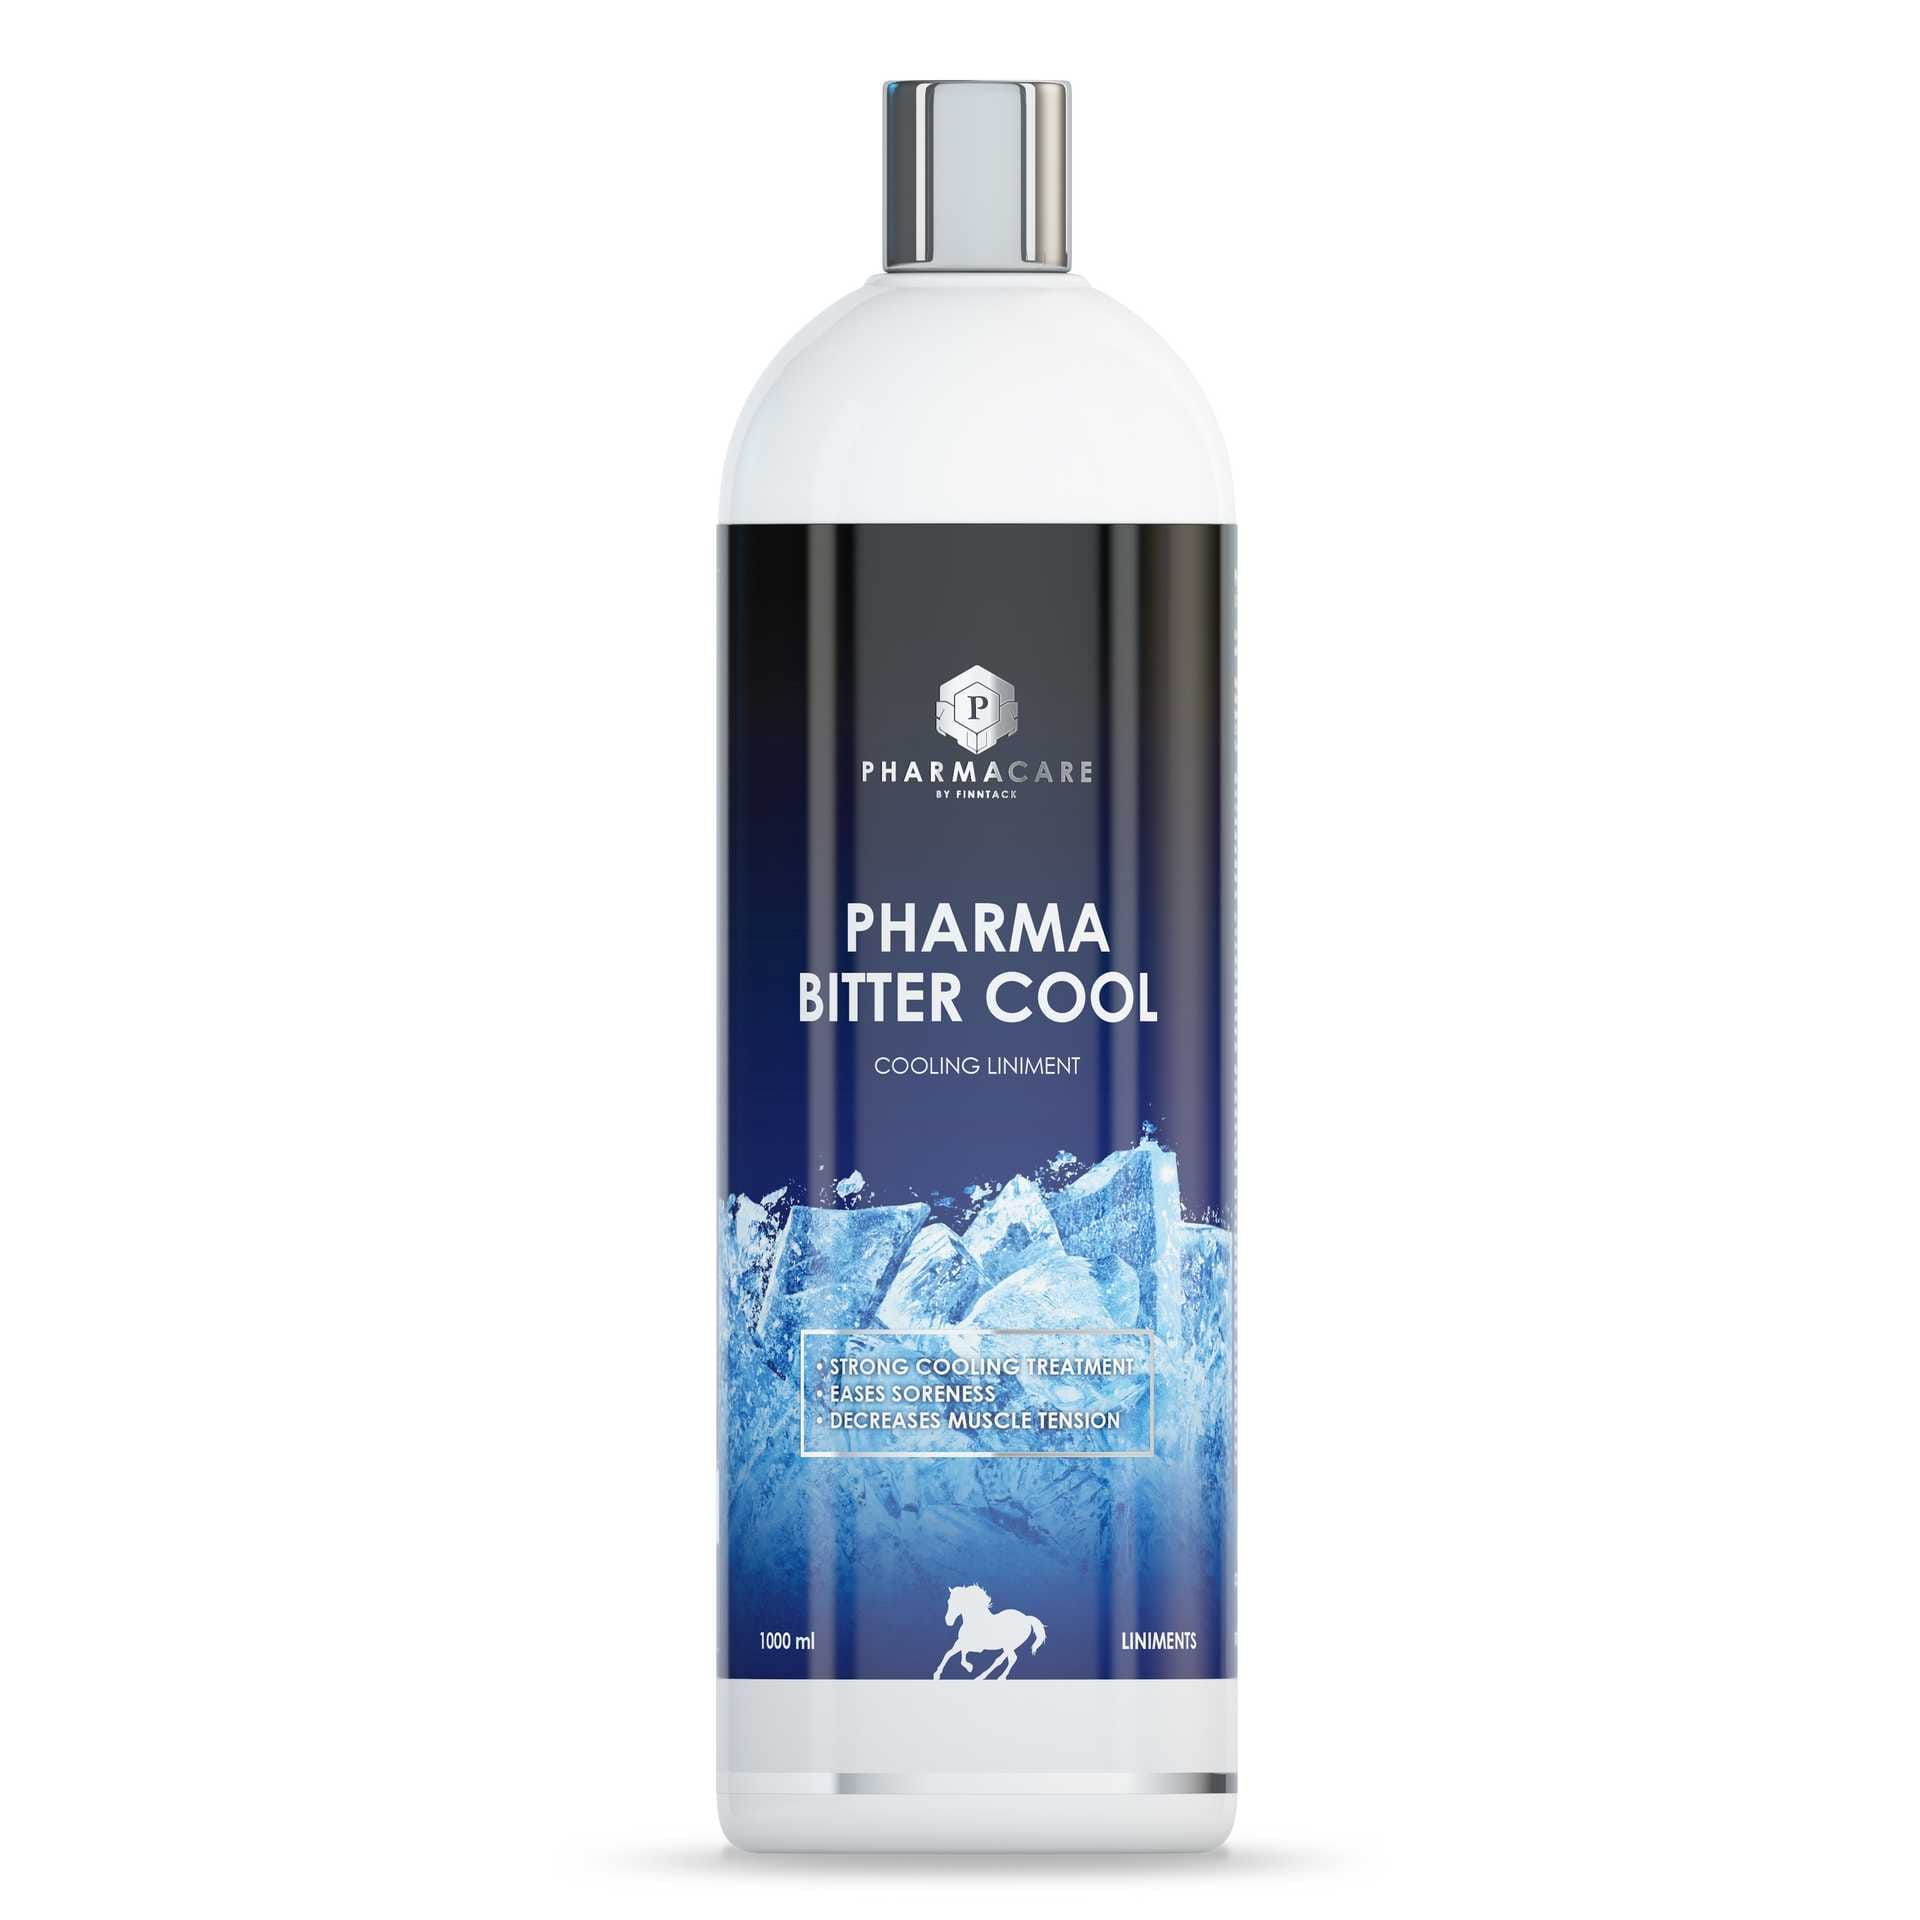 Pharma Bitter Cool linimentti, 1000 ml